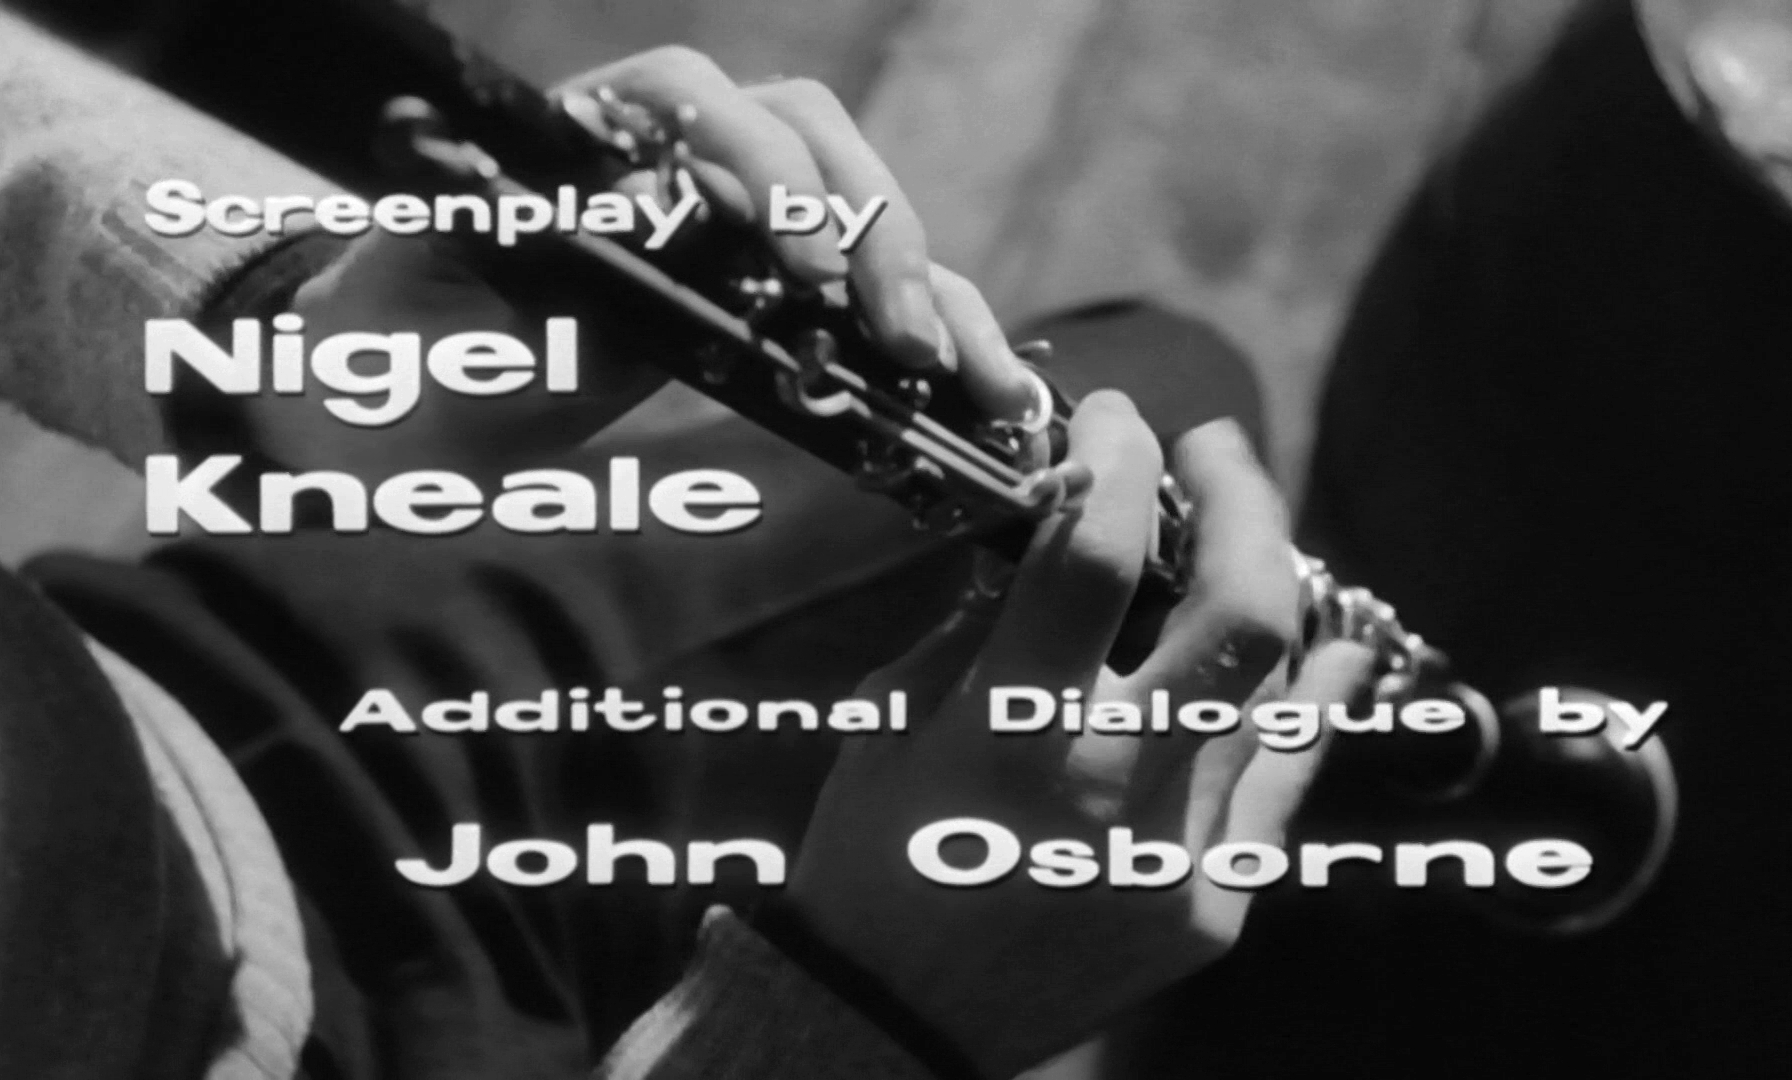 Main title from Look Back in Anger (1959) (8). Screenplay by Nigel Kneale. Additional dialogue by John Osborne